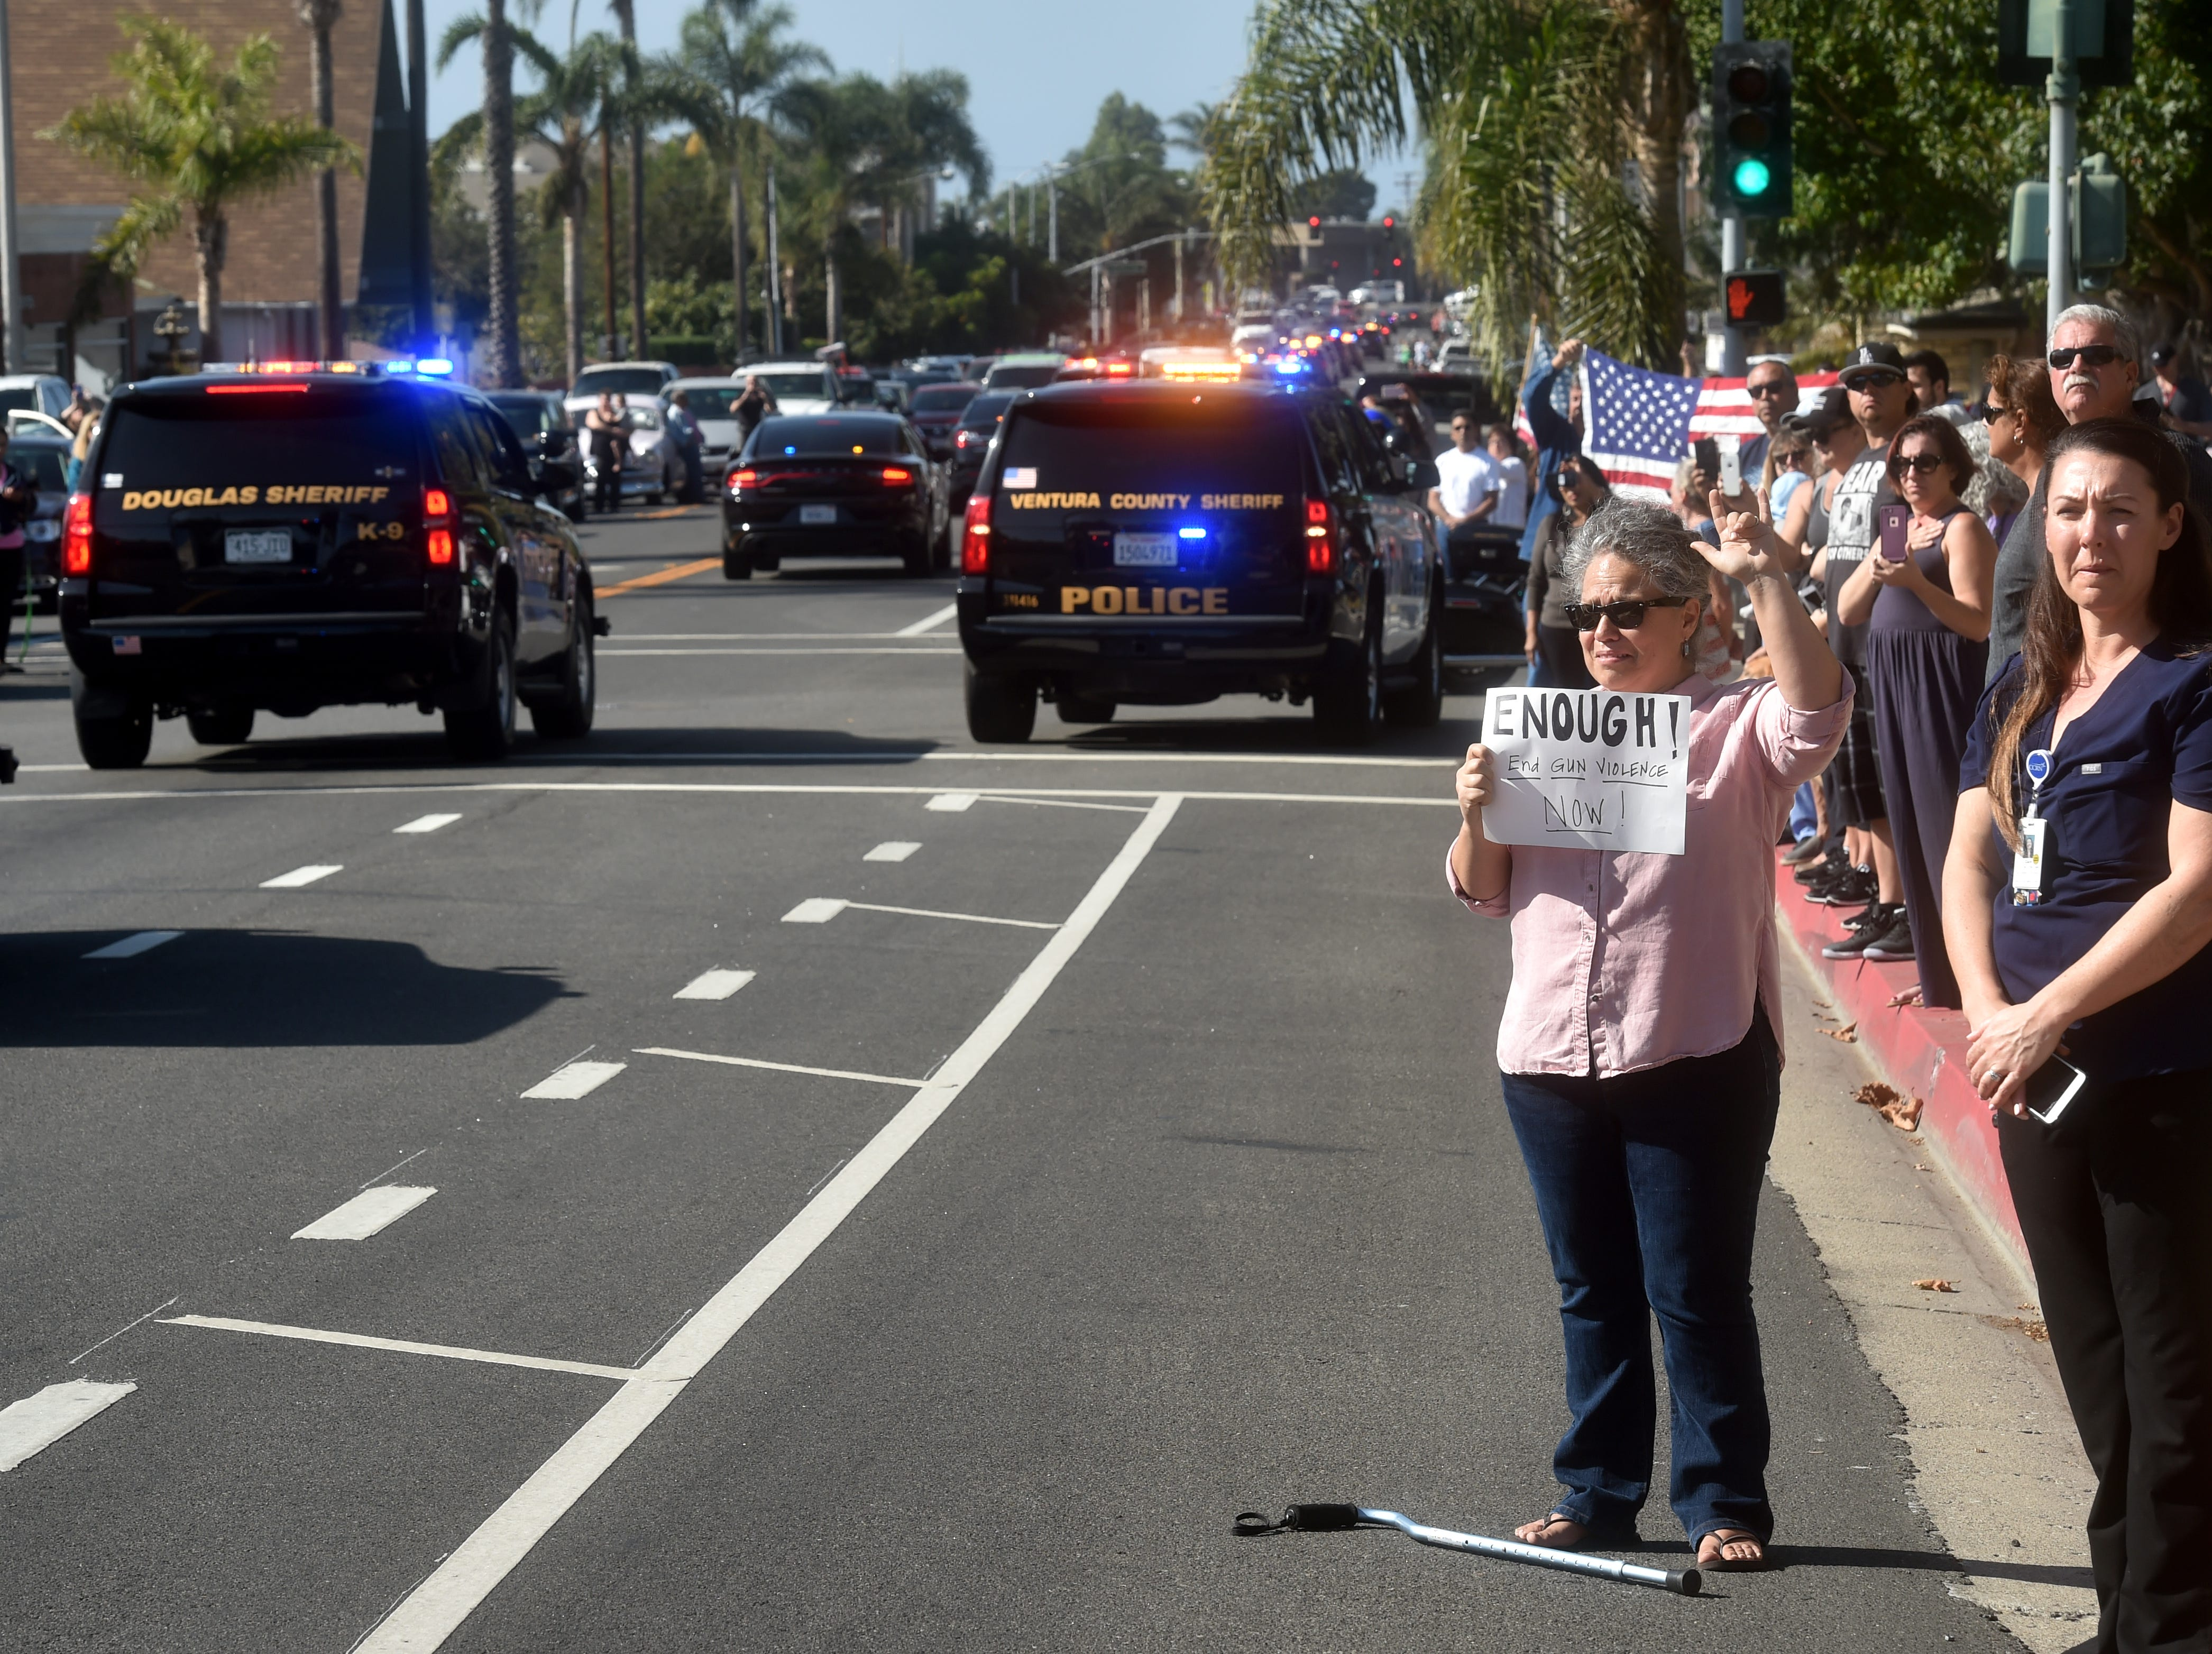 Mary Perry, of Ventura, cries while she holds a sign advocating for gu control as a procession passes by carrying the body of Ventura County Sheriff Sgt. Ron Helus passes by on Thursday. Helus was one of 12 victims of a shooting in Thousand Oaks late Wednesday.